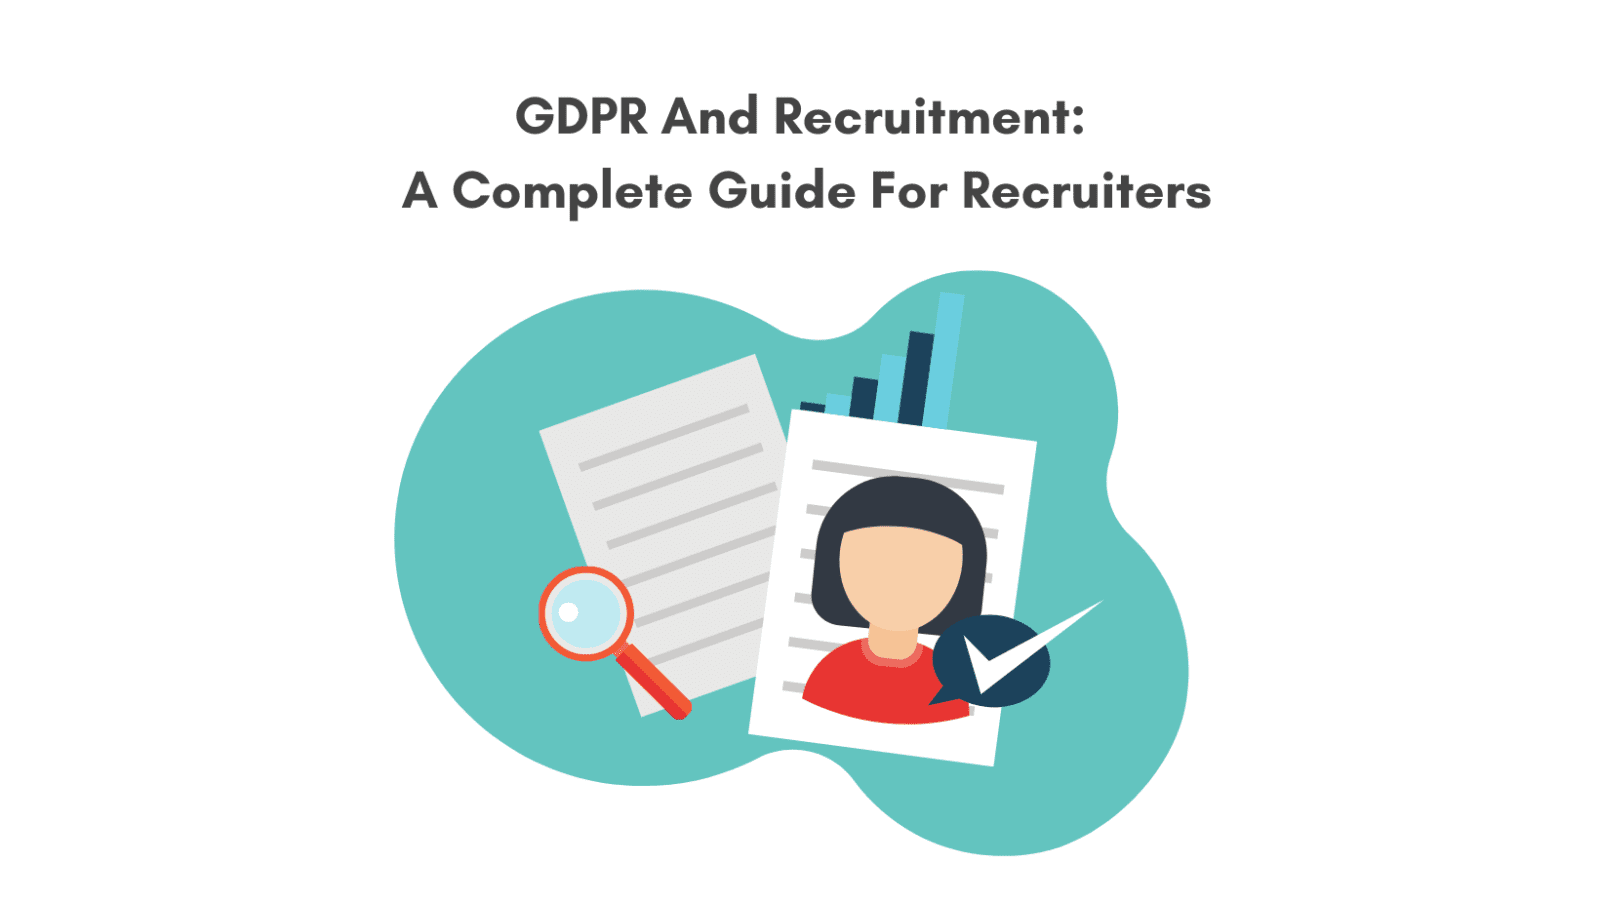 GDPR and recruitment. How do recruiters comply with GDPR. Everything for recruiters to know about GDPR.